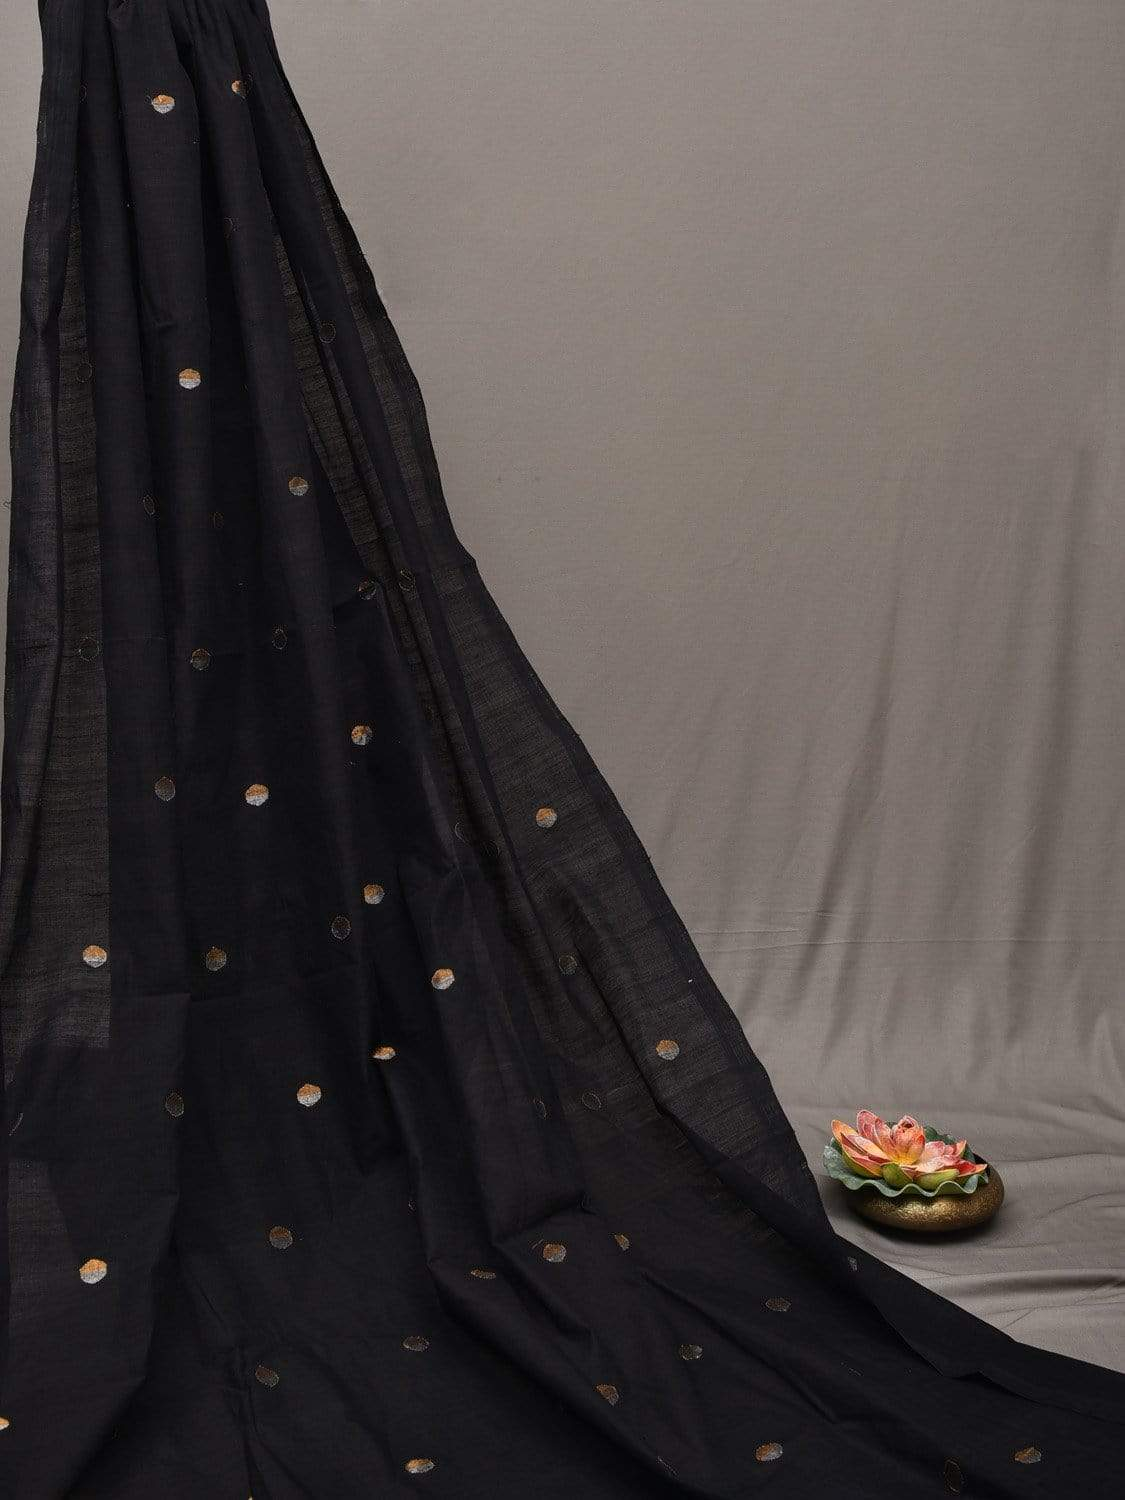 Black Khadi Cotton Handloom Fabric with Jamdani Round Gold-Silver Zari Buta Design f0166